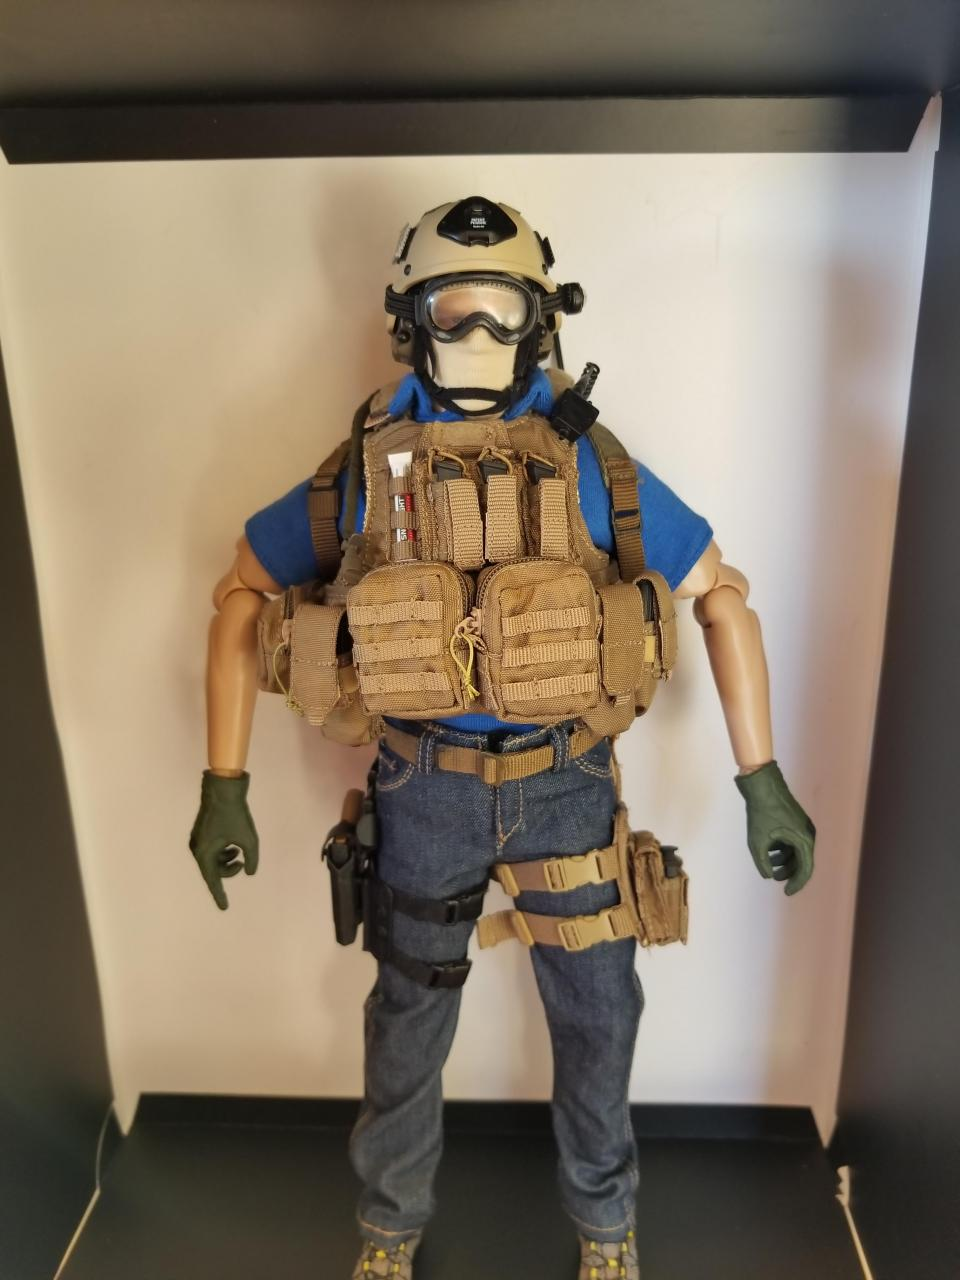 Modern Warfare 2 - Task Force 141 operative in urban wear (pic heavy)-3_-_rzcrz2c[1]-jpg